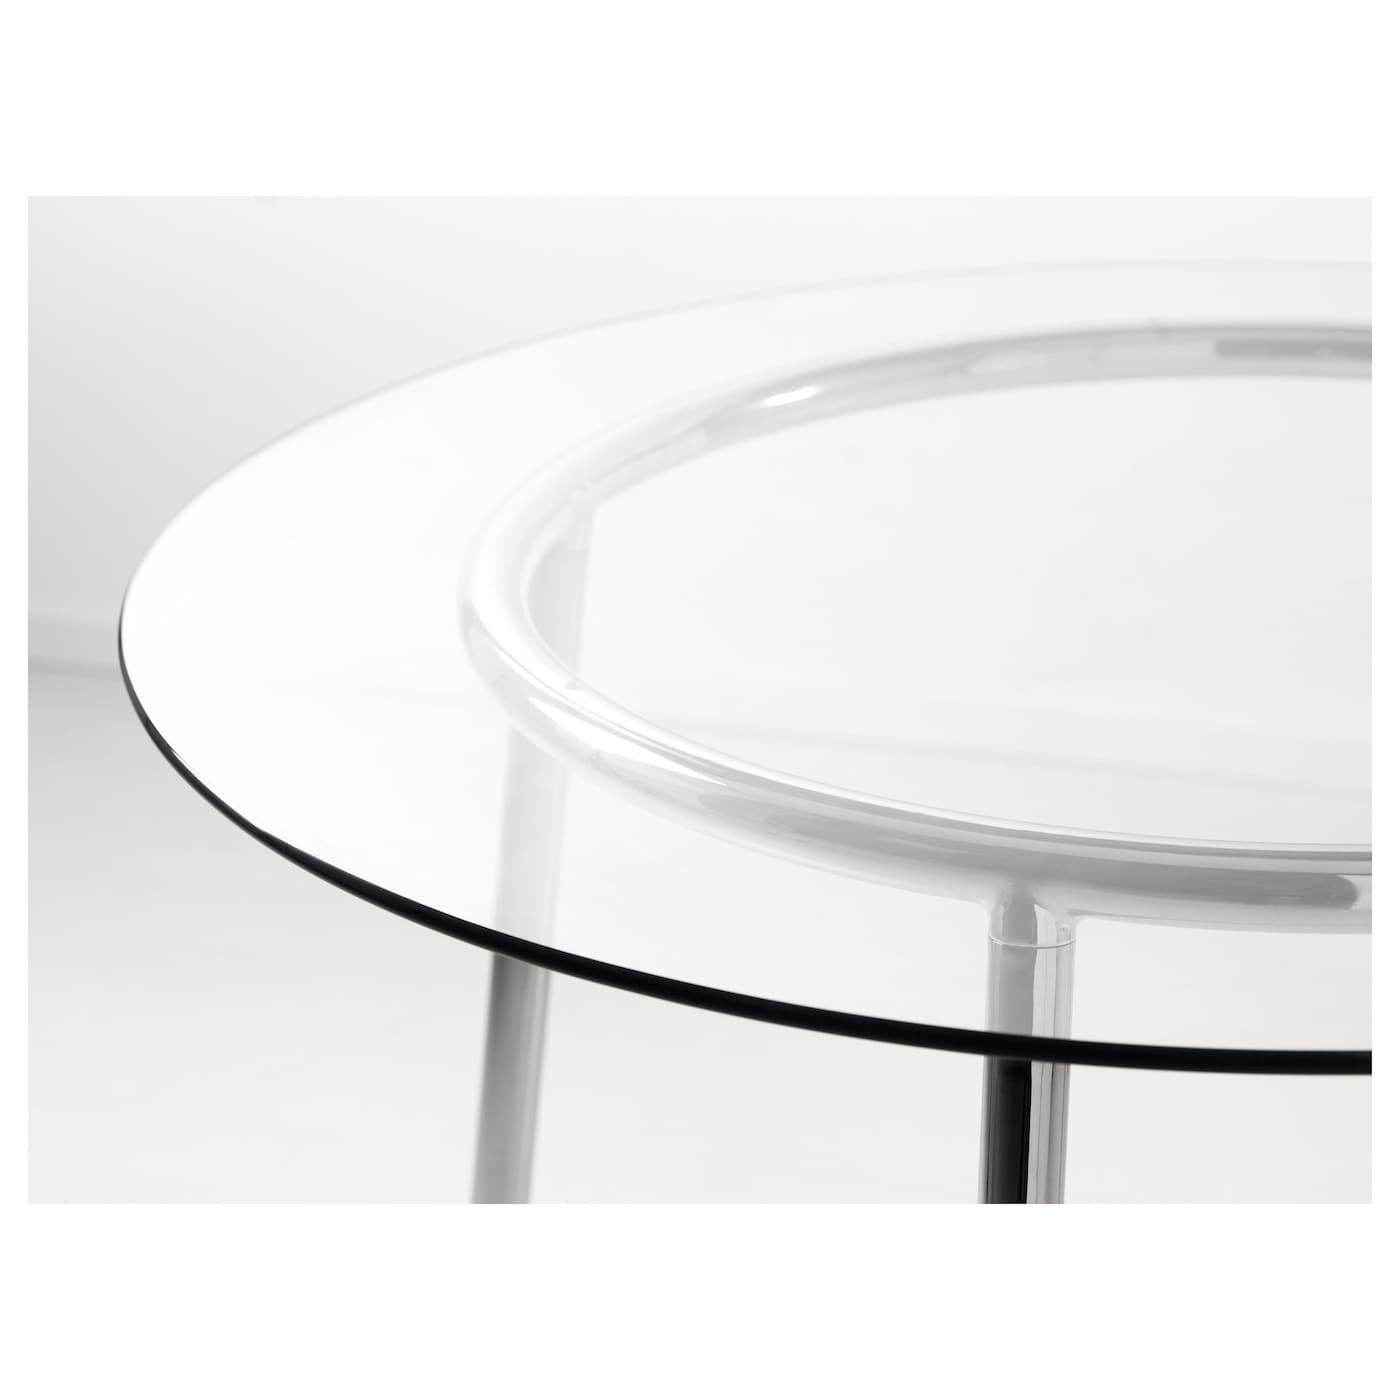 Salmi table glass chrome plated 105 cm ikea - Tavolo rotondo vetro ikea ...